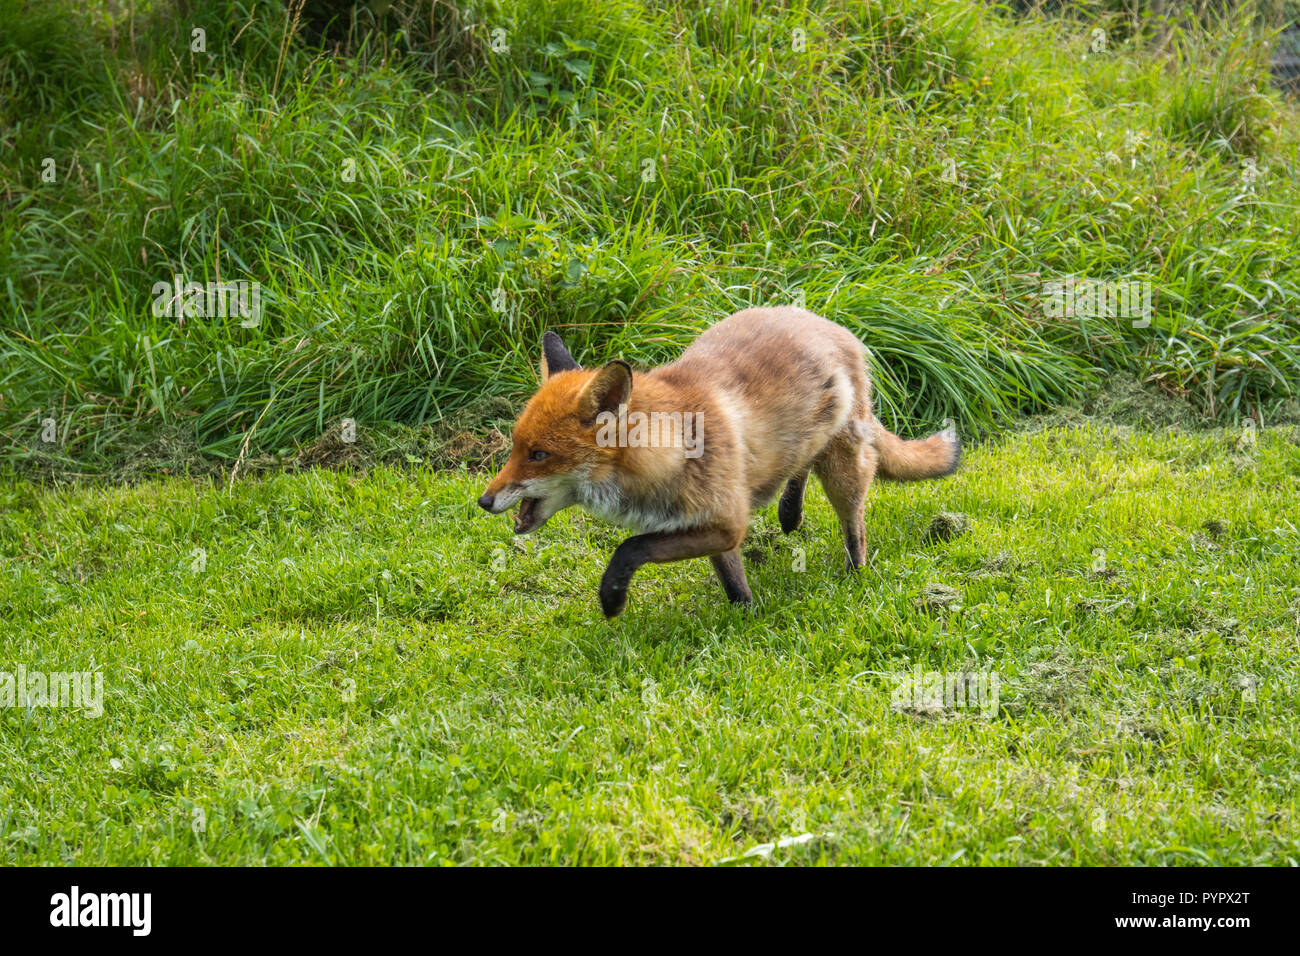 Red Fox on grass - Stock Image